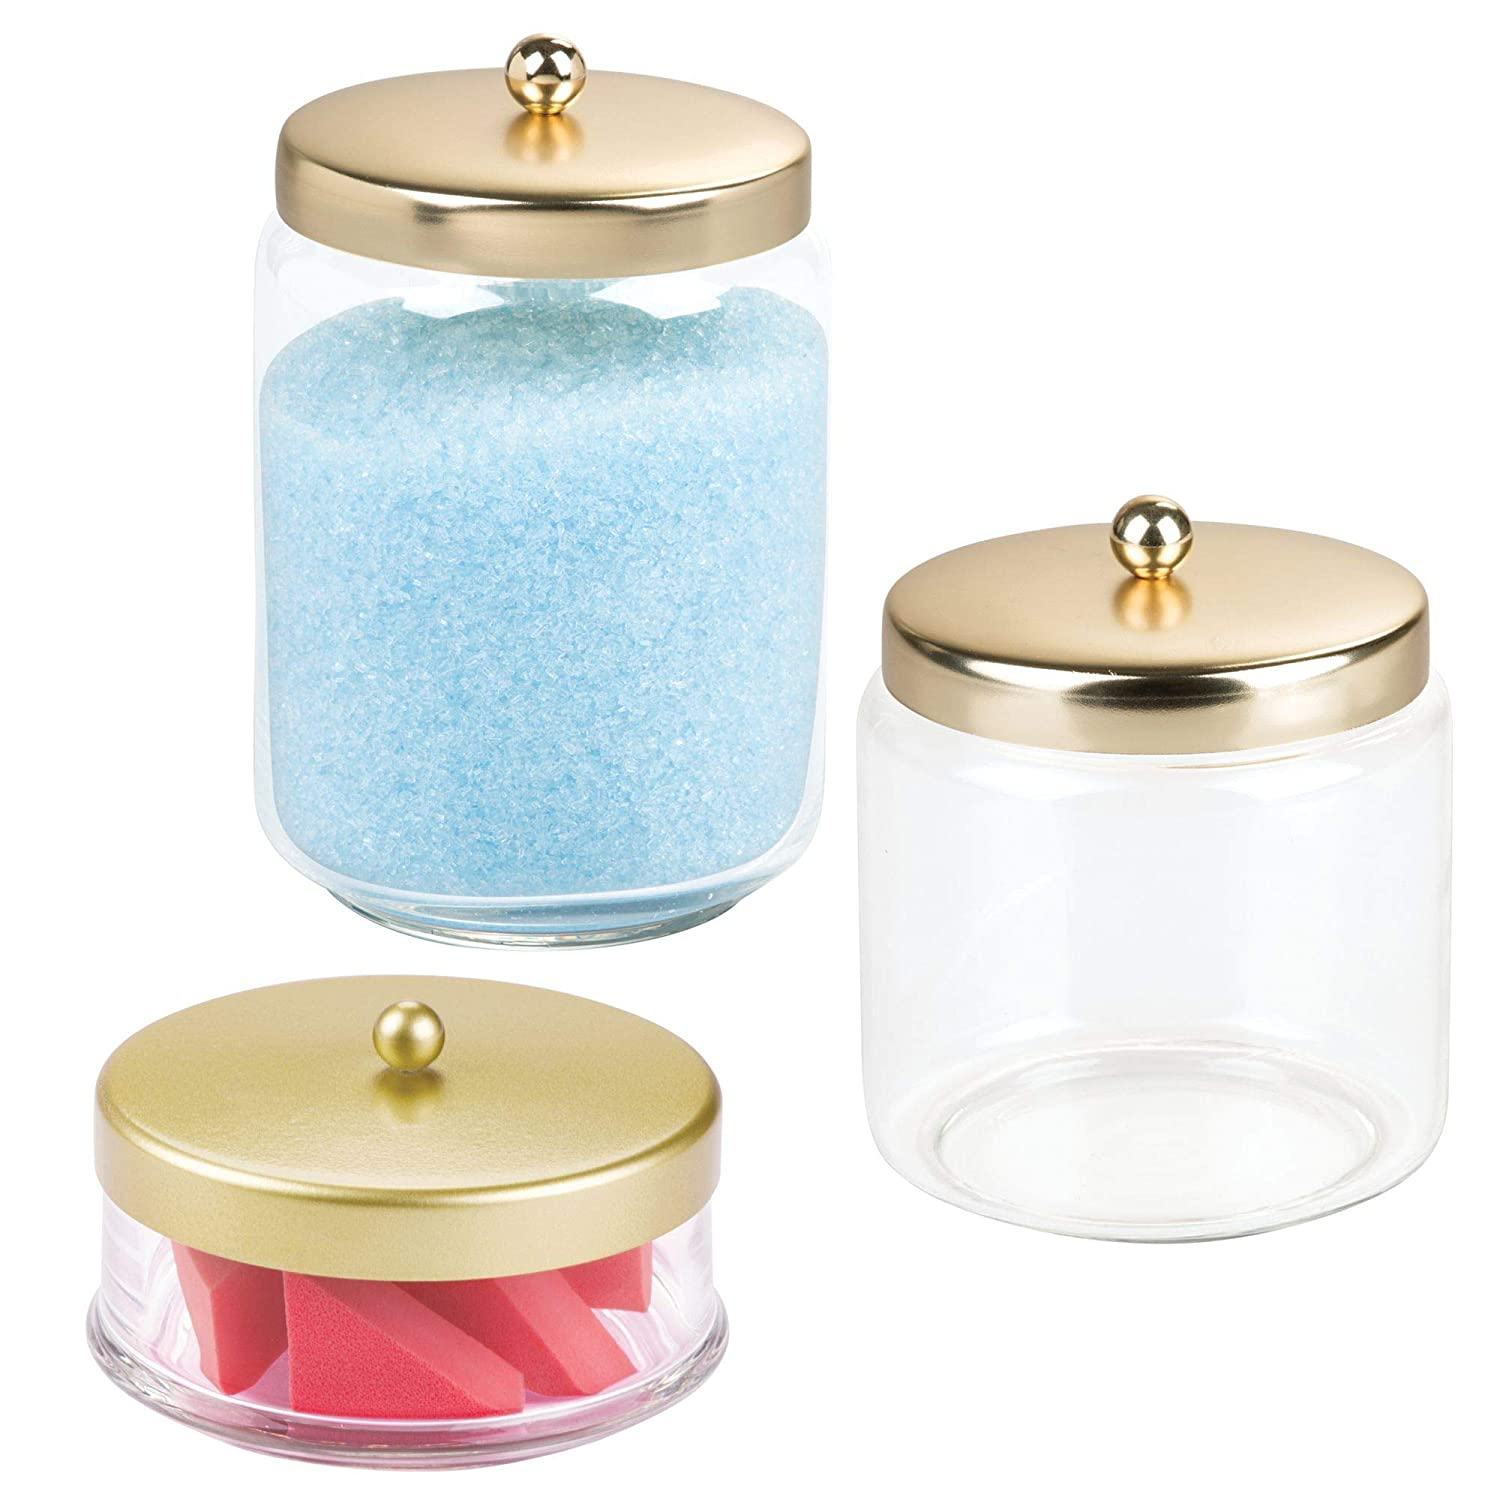 mDesign Bathroom Apothecary Storage Canisters Vanity Countertop - Set of 3, Clear/Gold/Brass MetroDecor